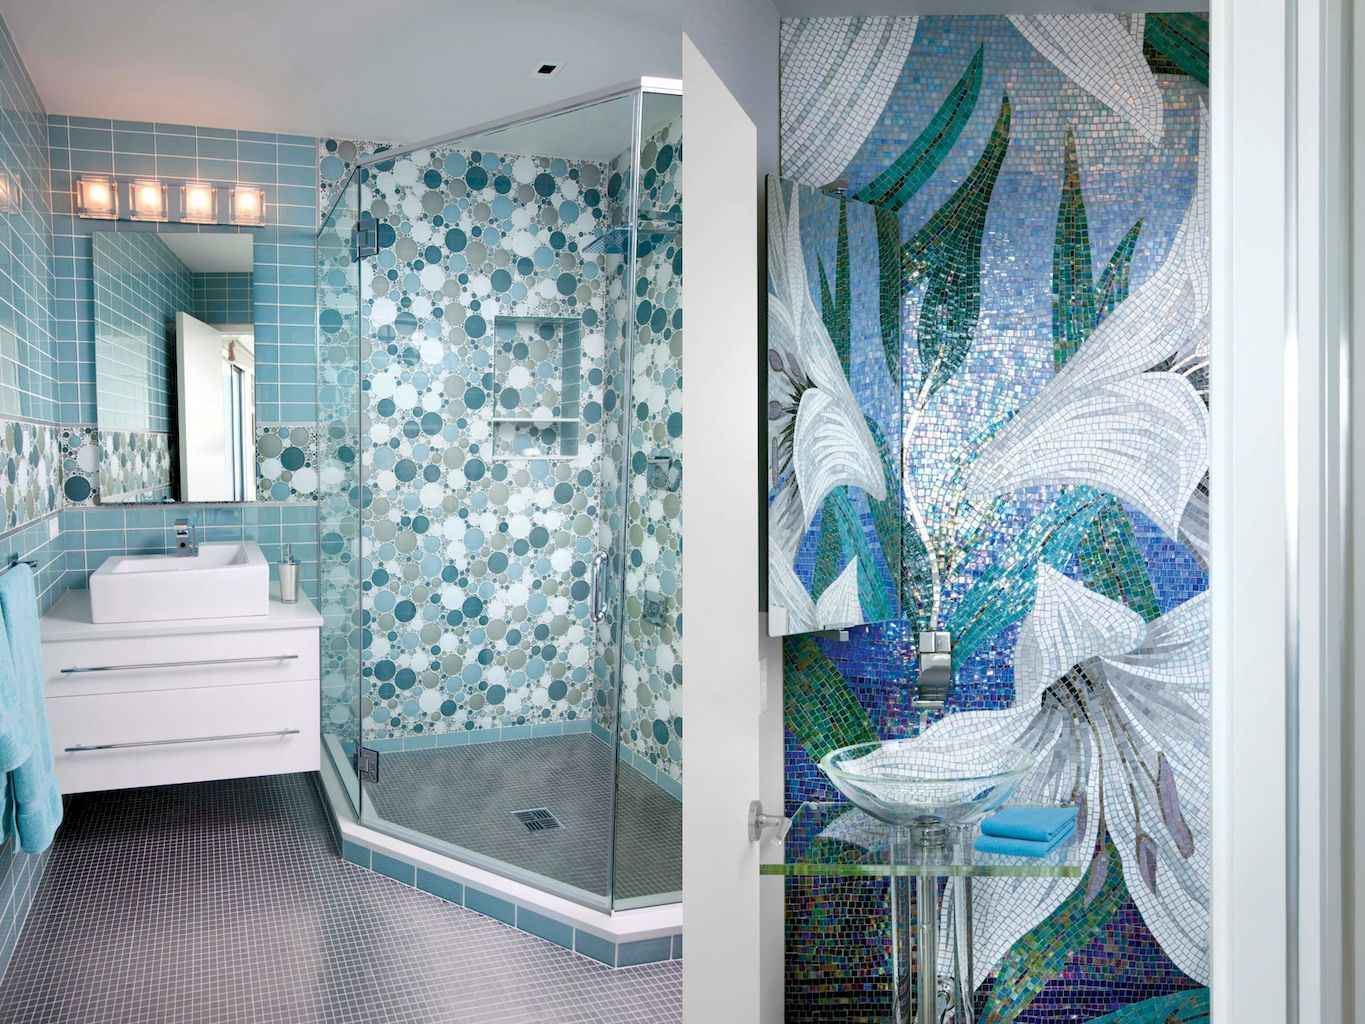 55 Cool and Relax Bathroom Decor Ideas (46)